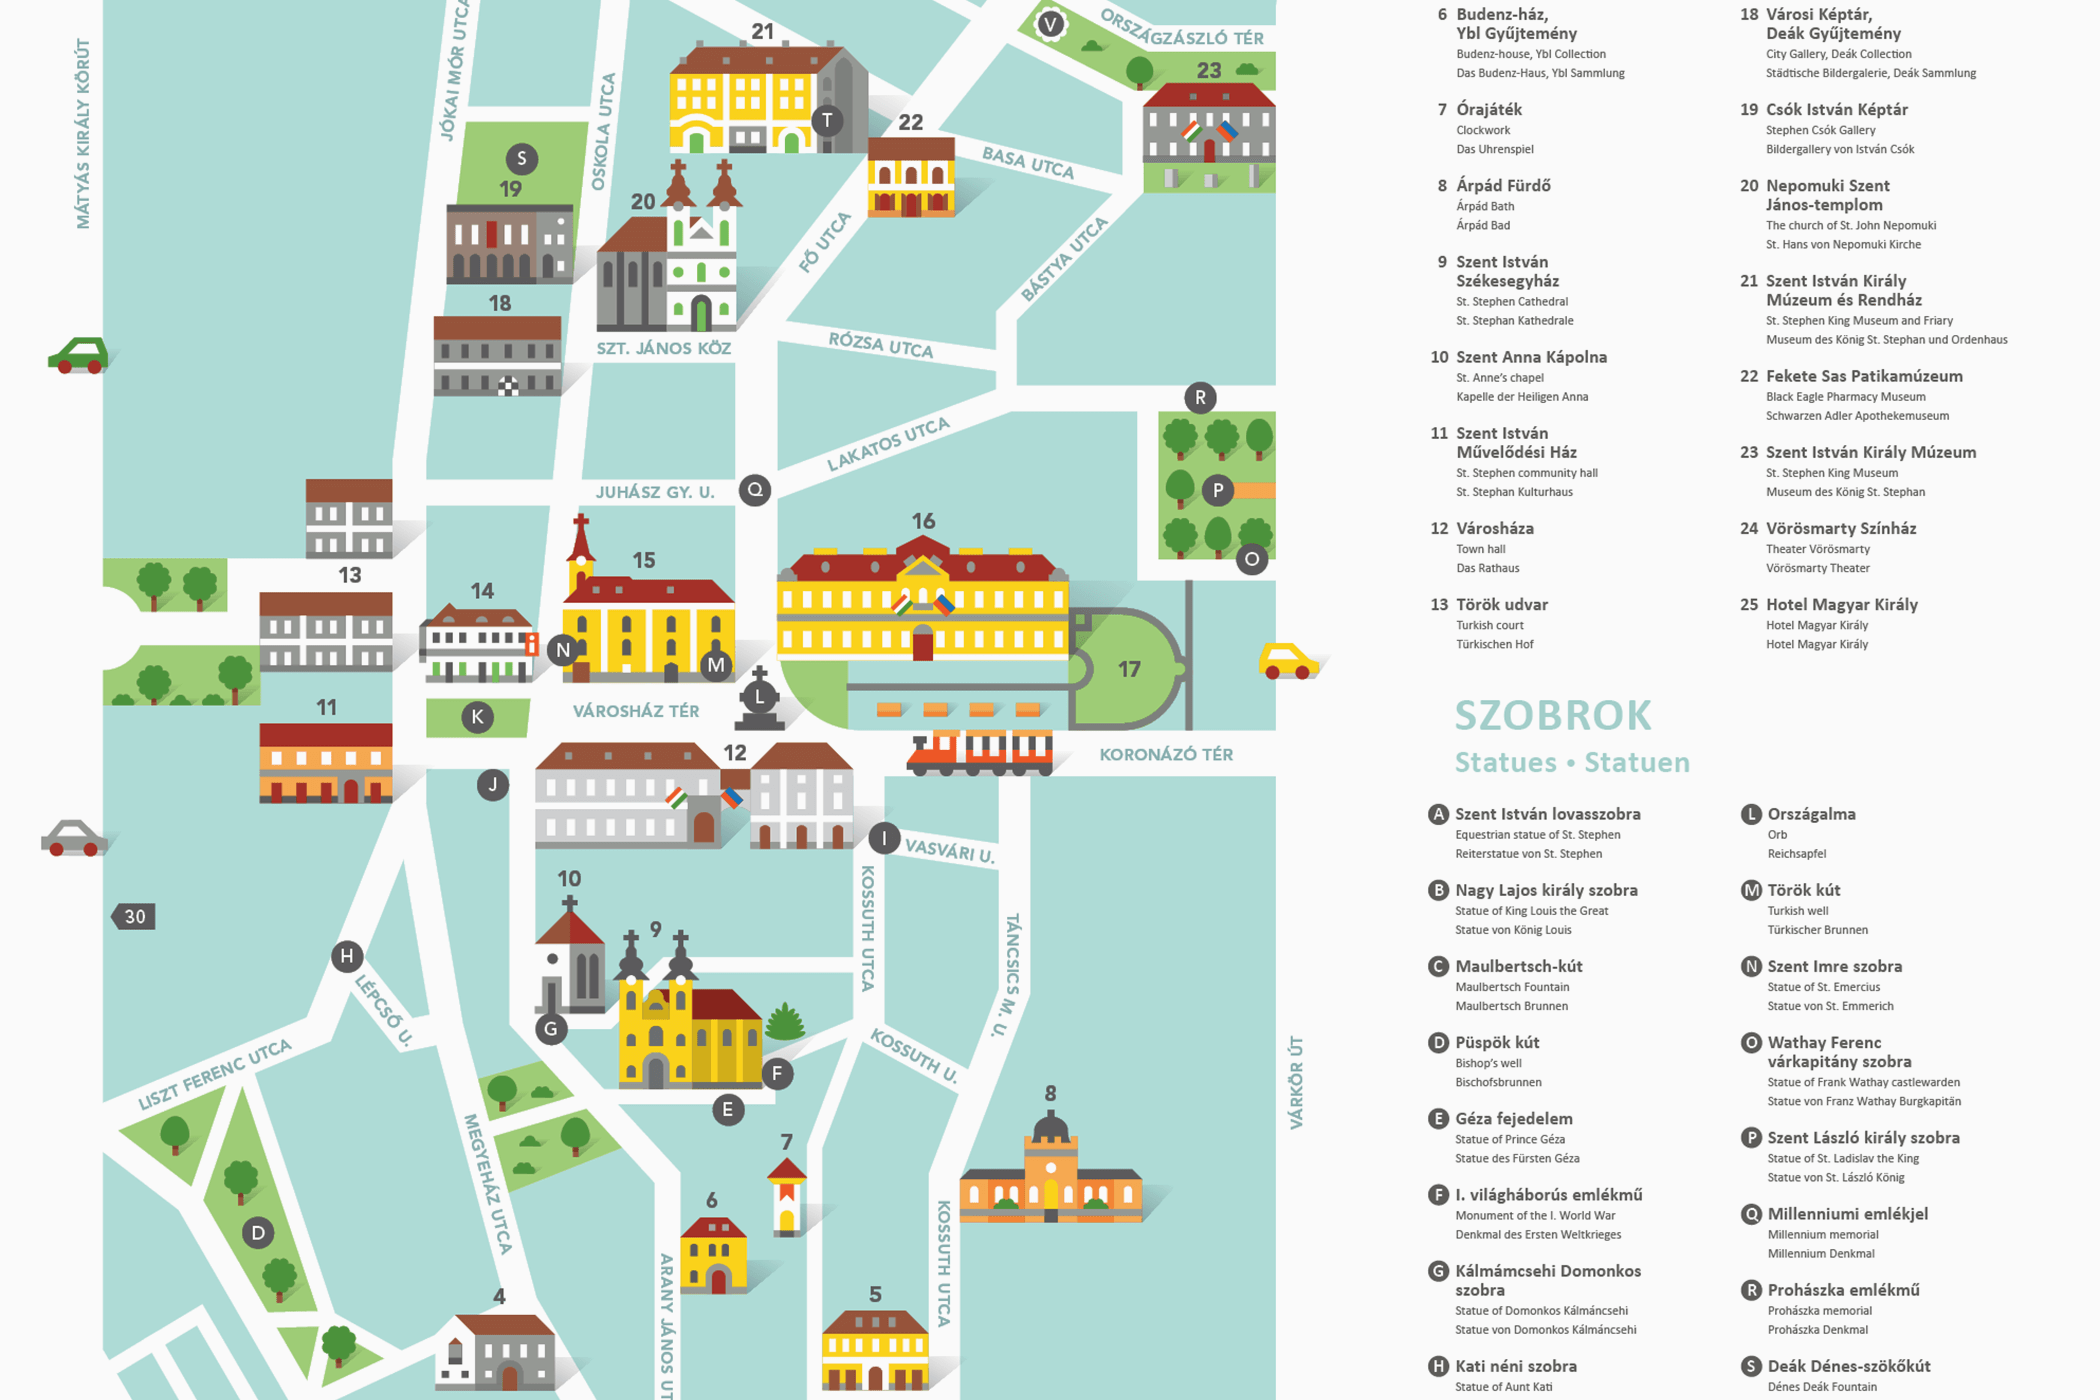 City guide poster map